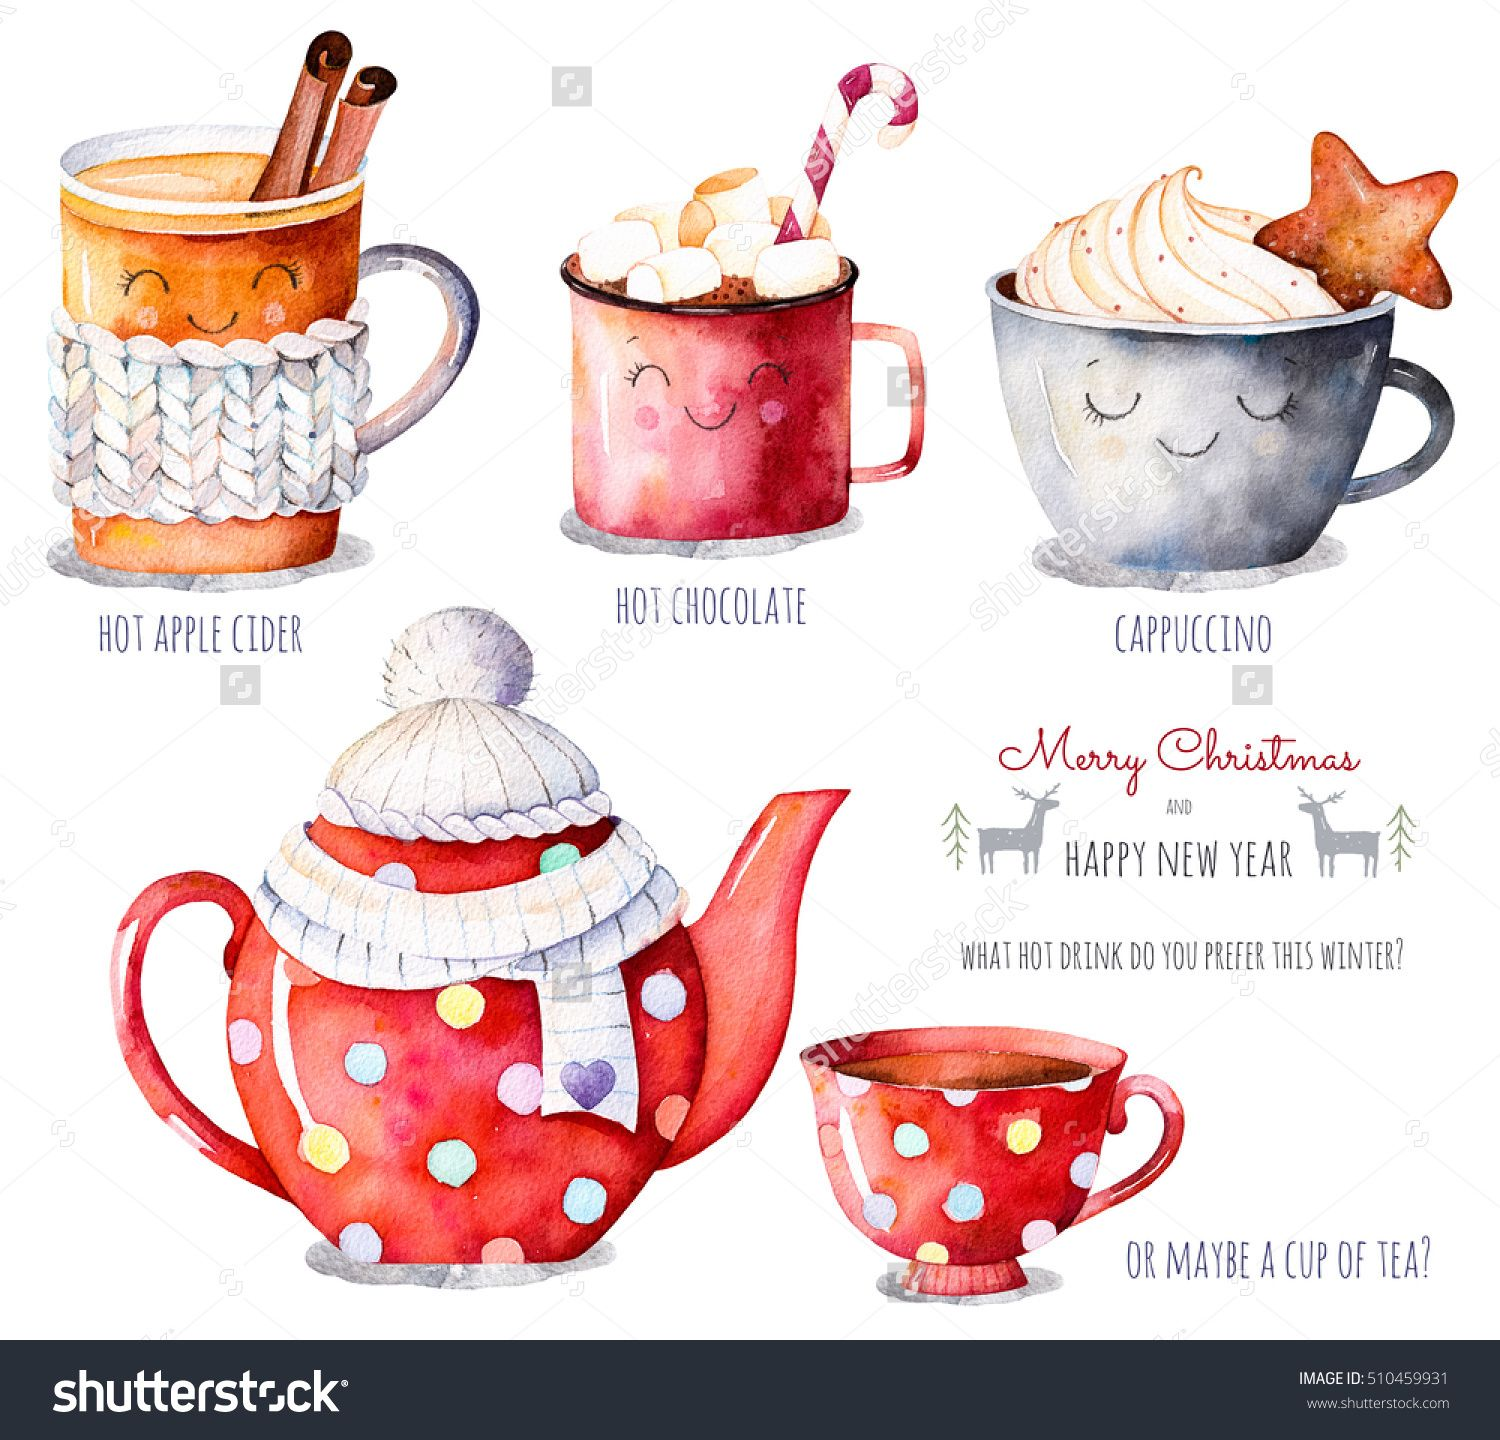 Merry Christmas And Happy New Year Set Watercolor Collection With